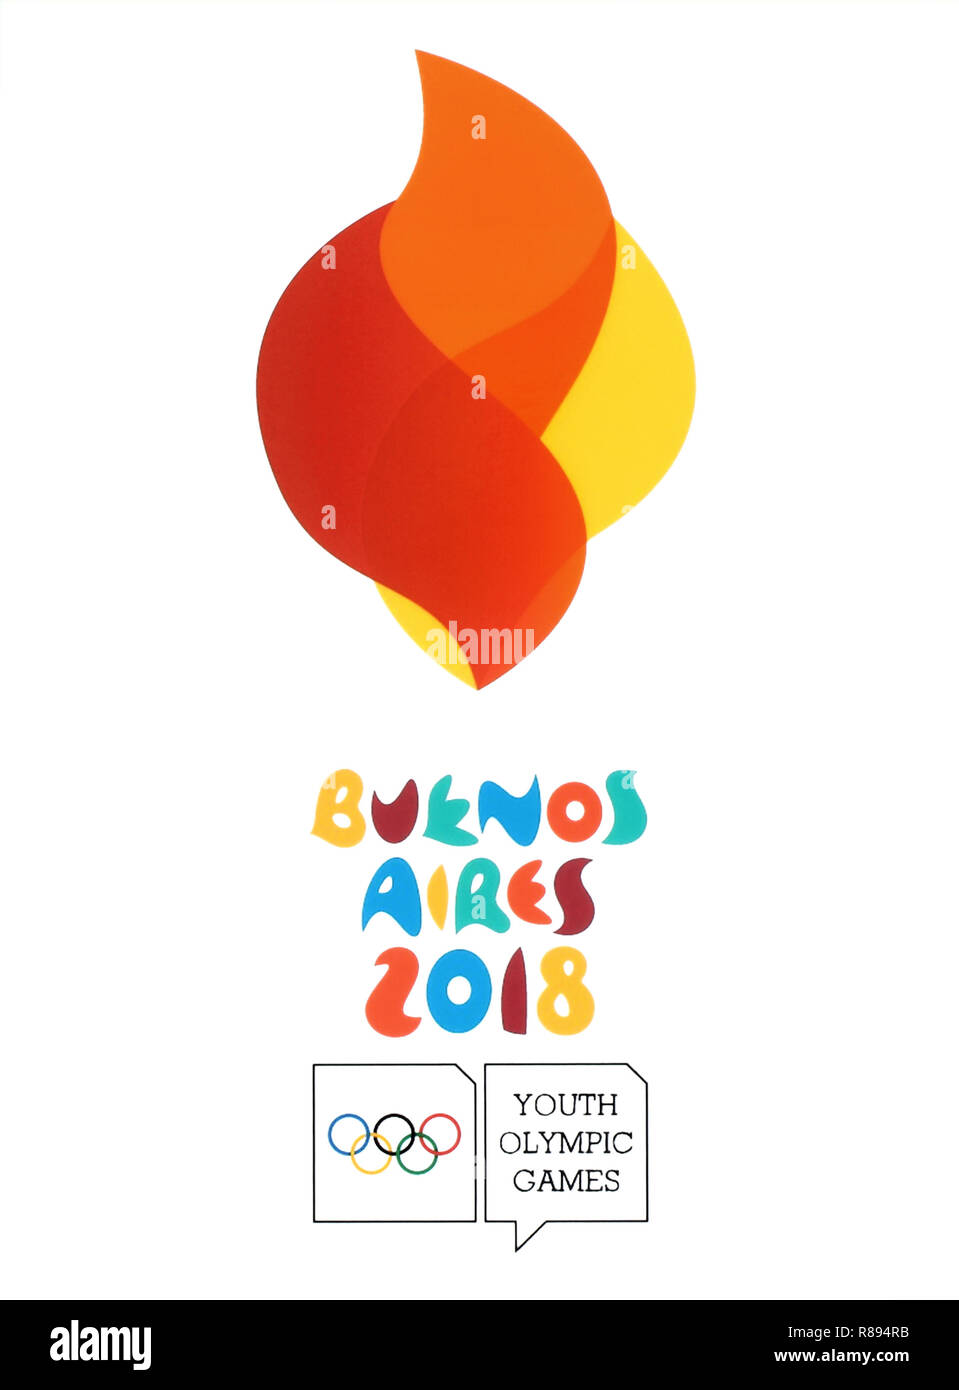 Kiev, Ukraine - August 16, 2018: Logo of Buenos Aires 2018 printed on paper, Summer Youth Olympic Games. It is a sport festival for teenagers. - Stock Image